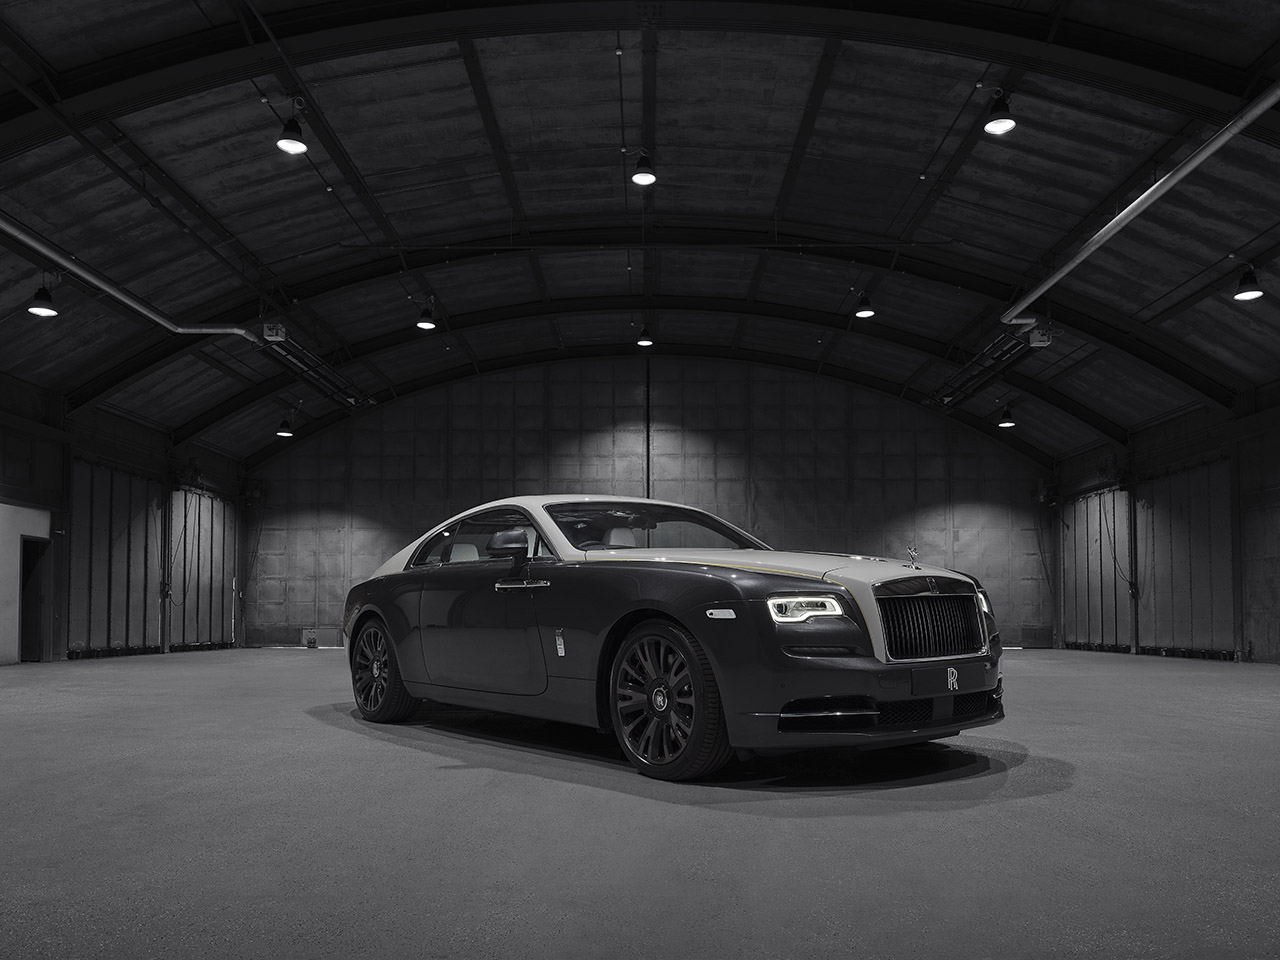 Rolls Royce Houston Eagle VIII Wraith